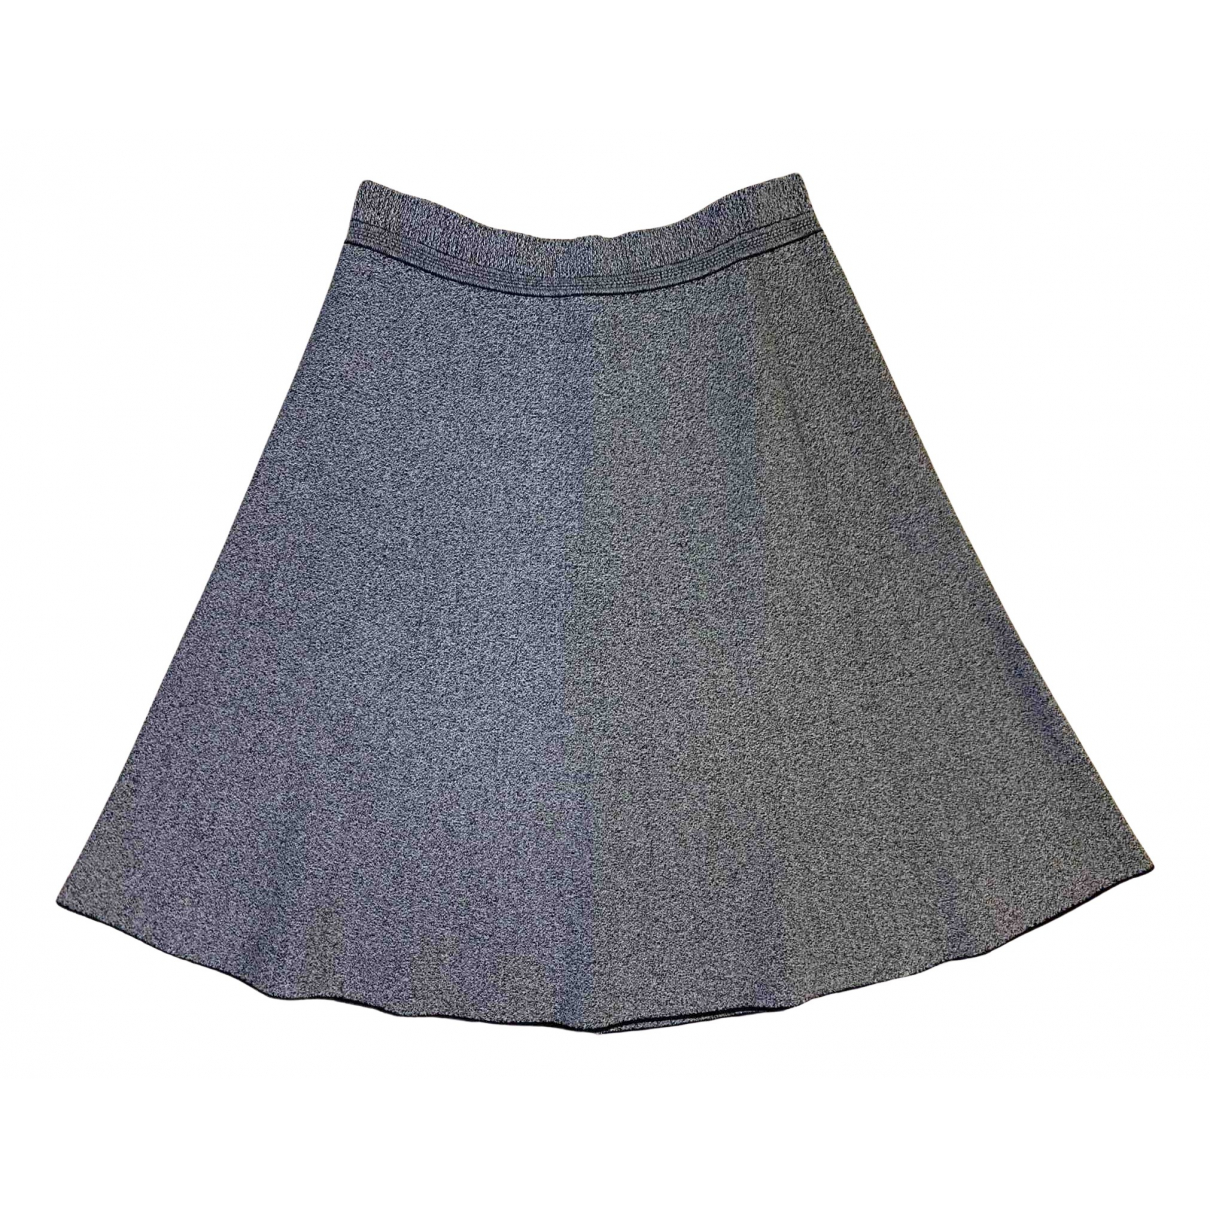 Theory - Jupe   pour femme - gris